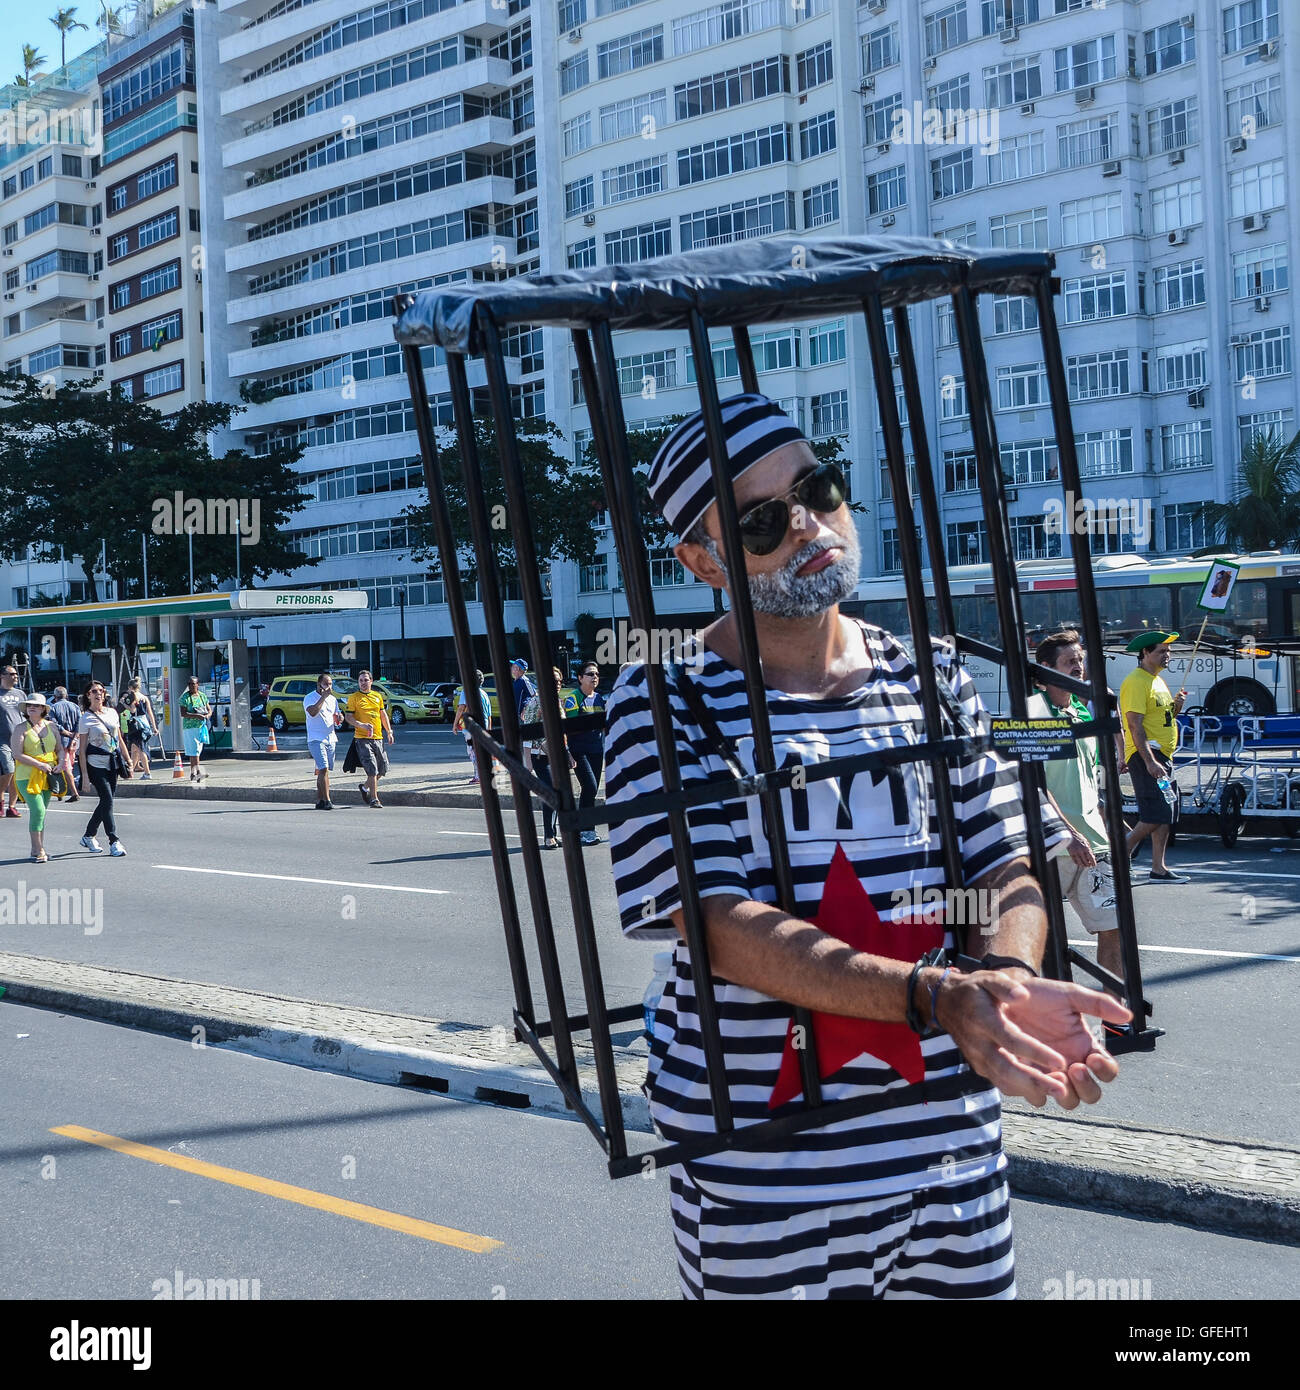 Anti-corruption protesters gather on Copacabana beach to vent their frustration at the current political situation - Stock Image